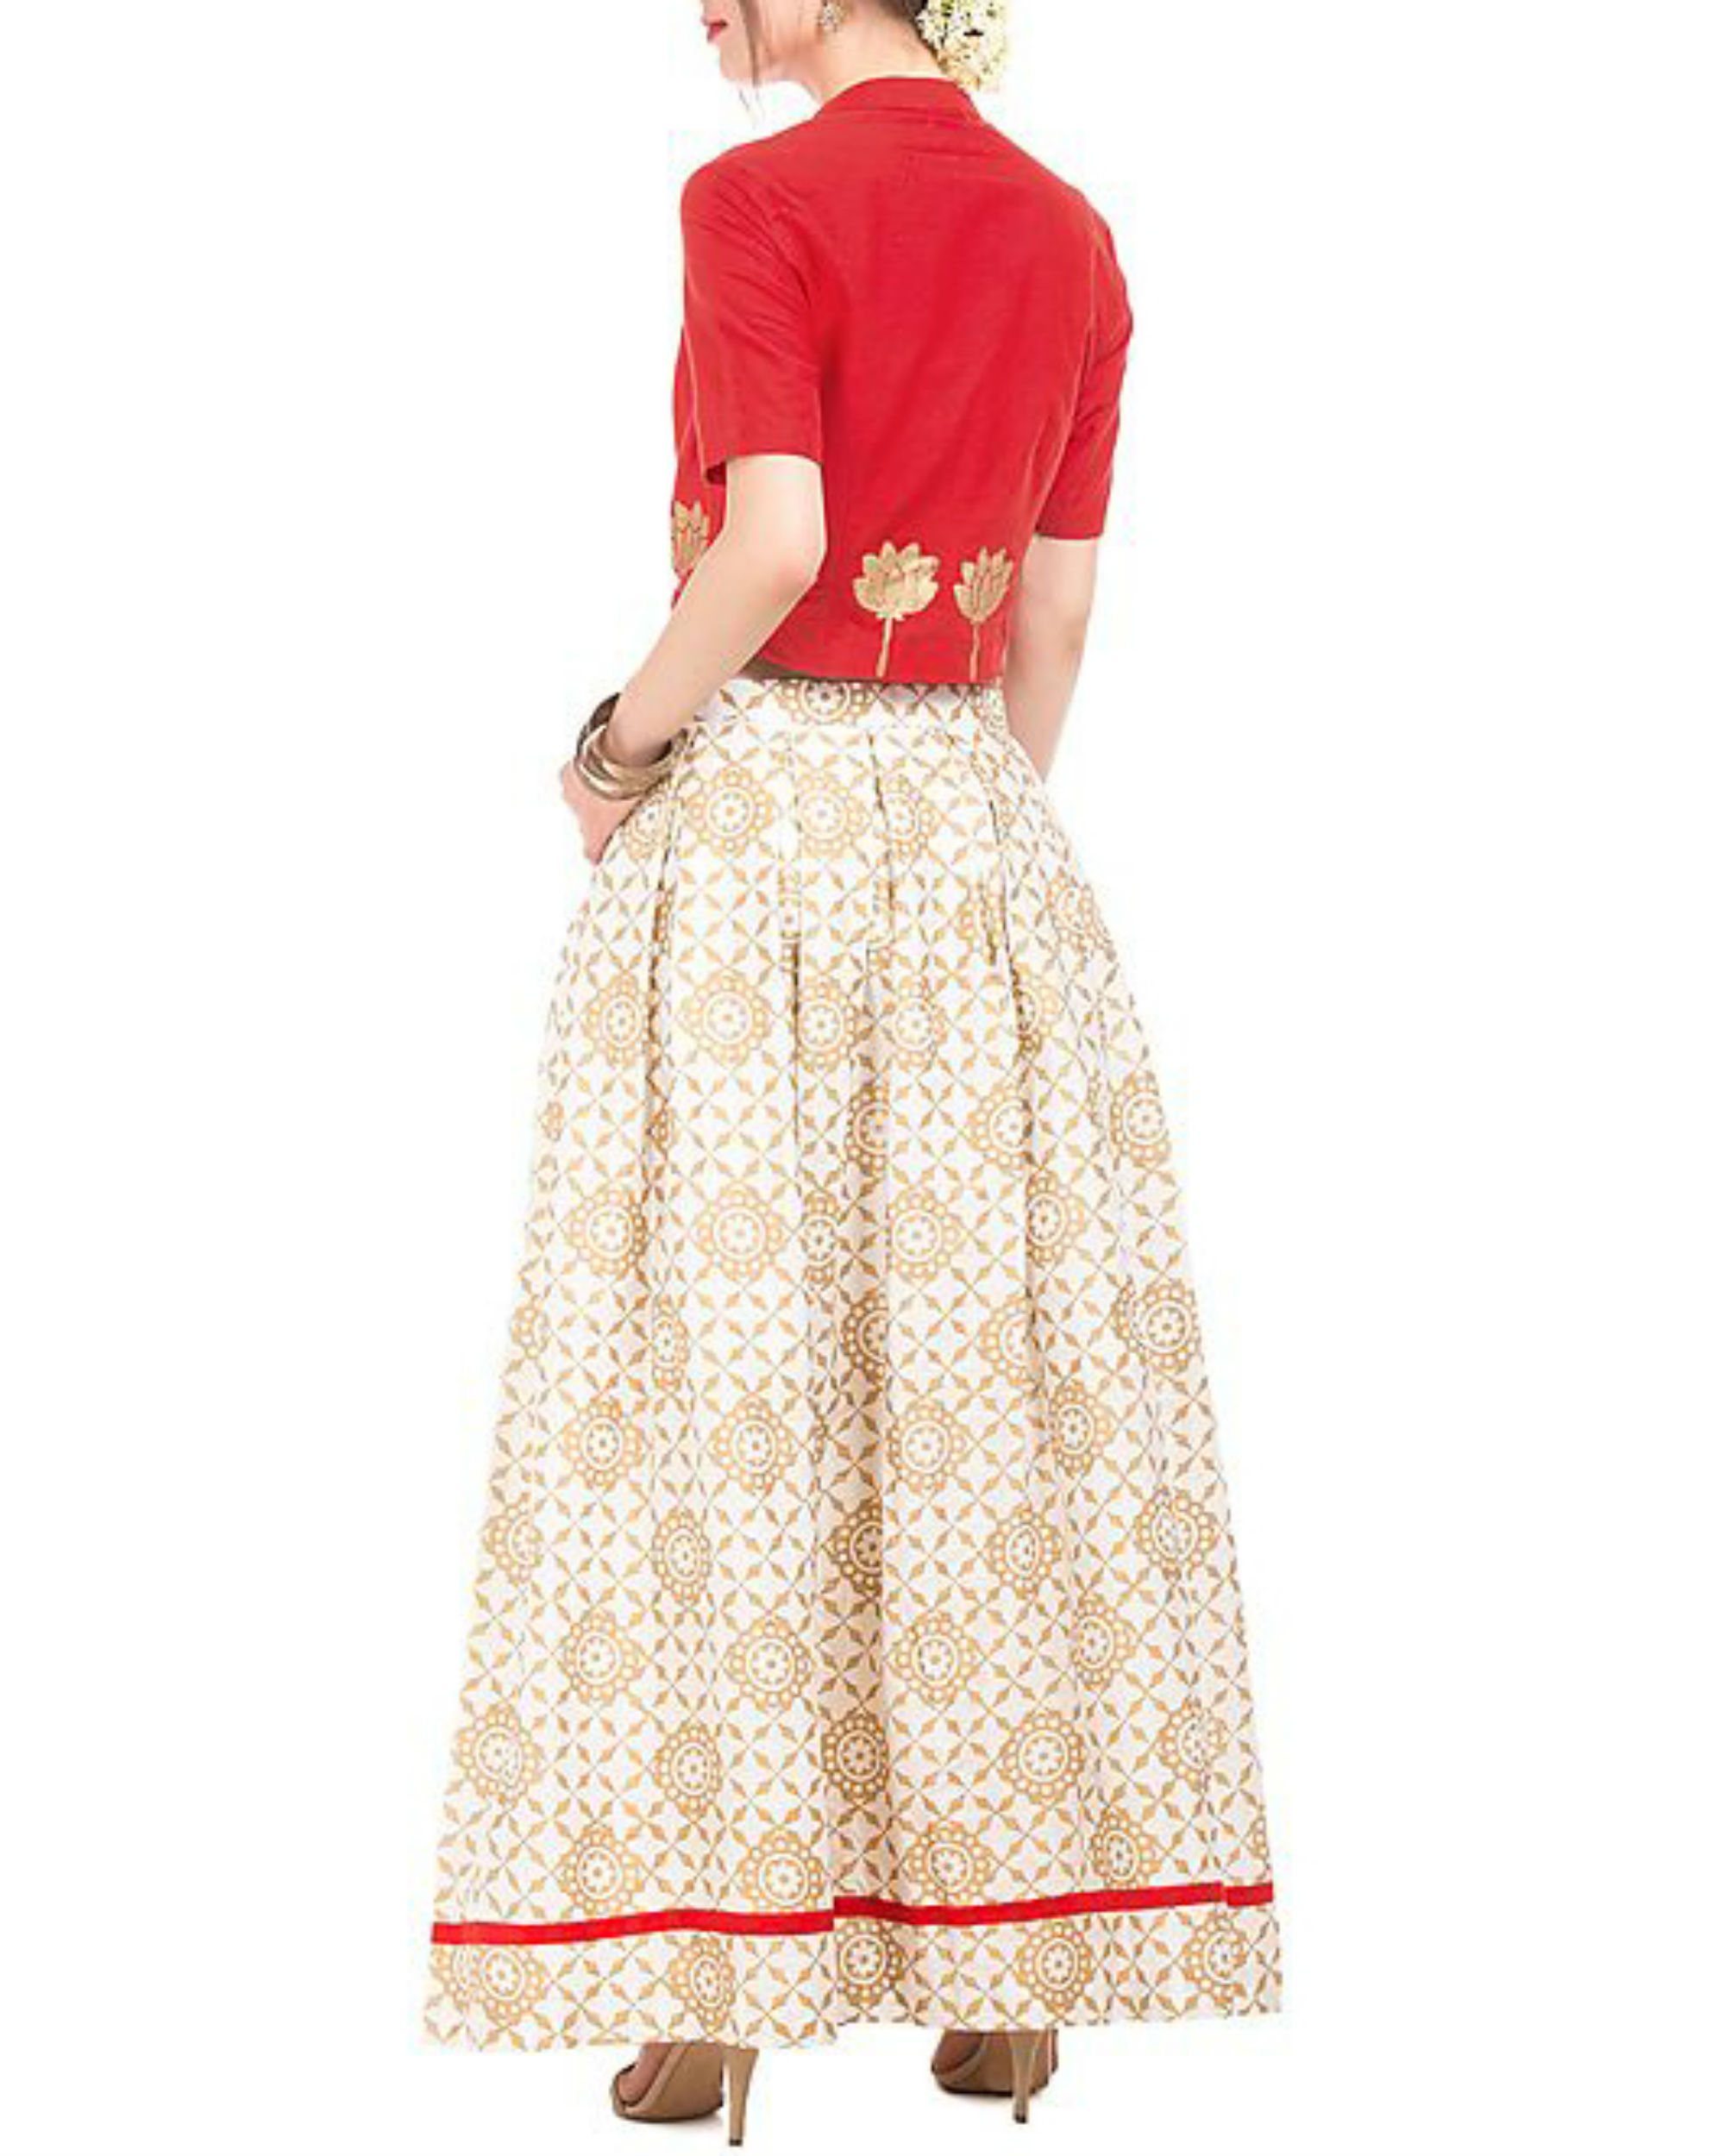 02a5acc2227 Red and white crop top and skirt with golden block prints